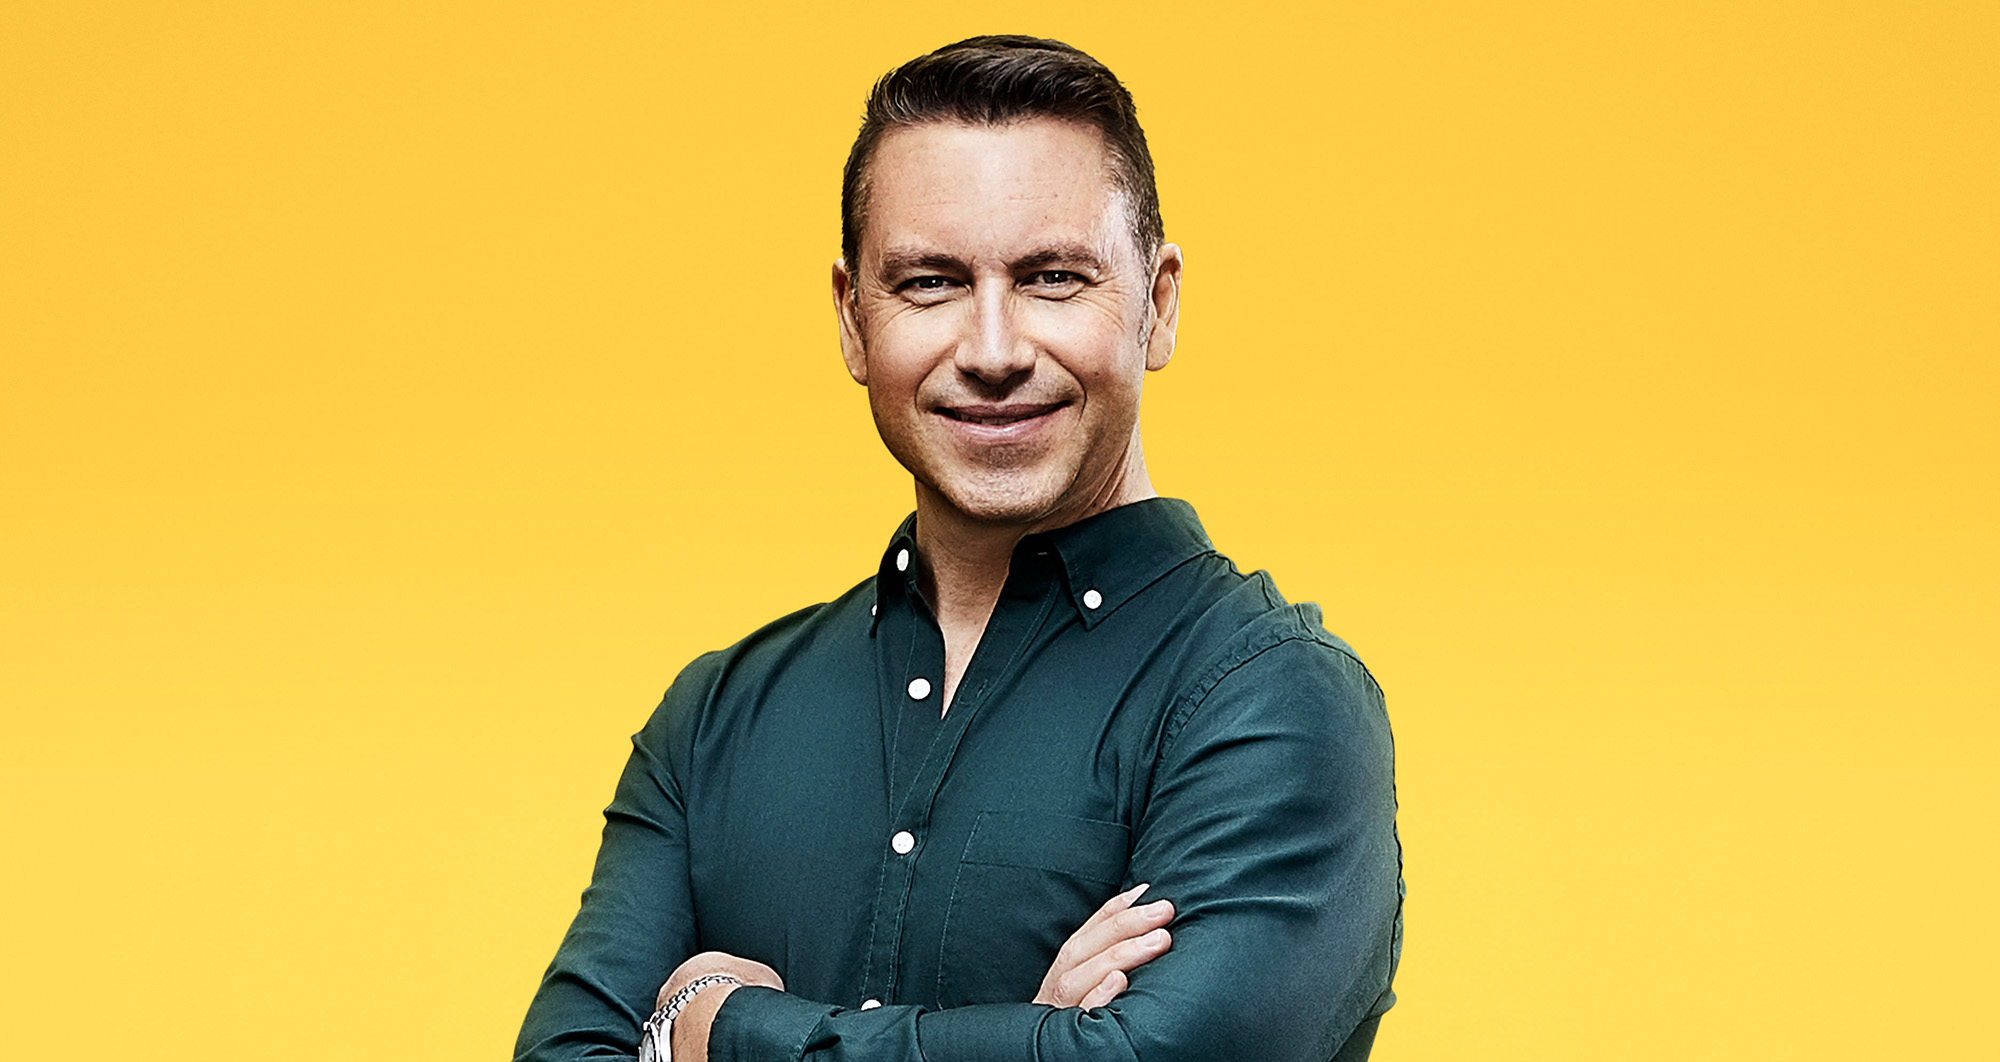 Smiling man with arms crossed, yellow background